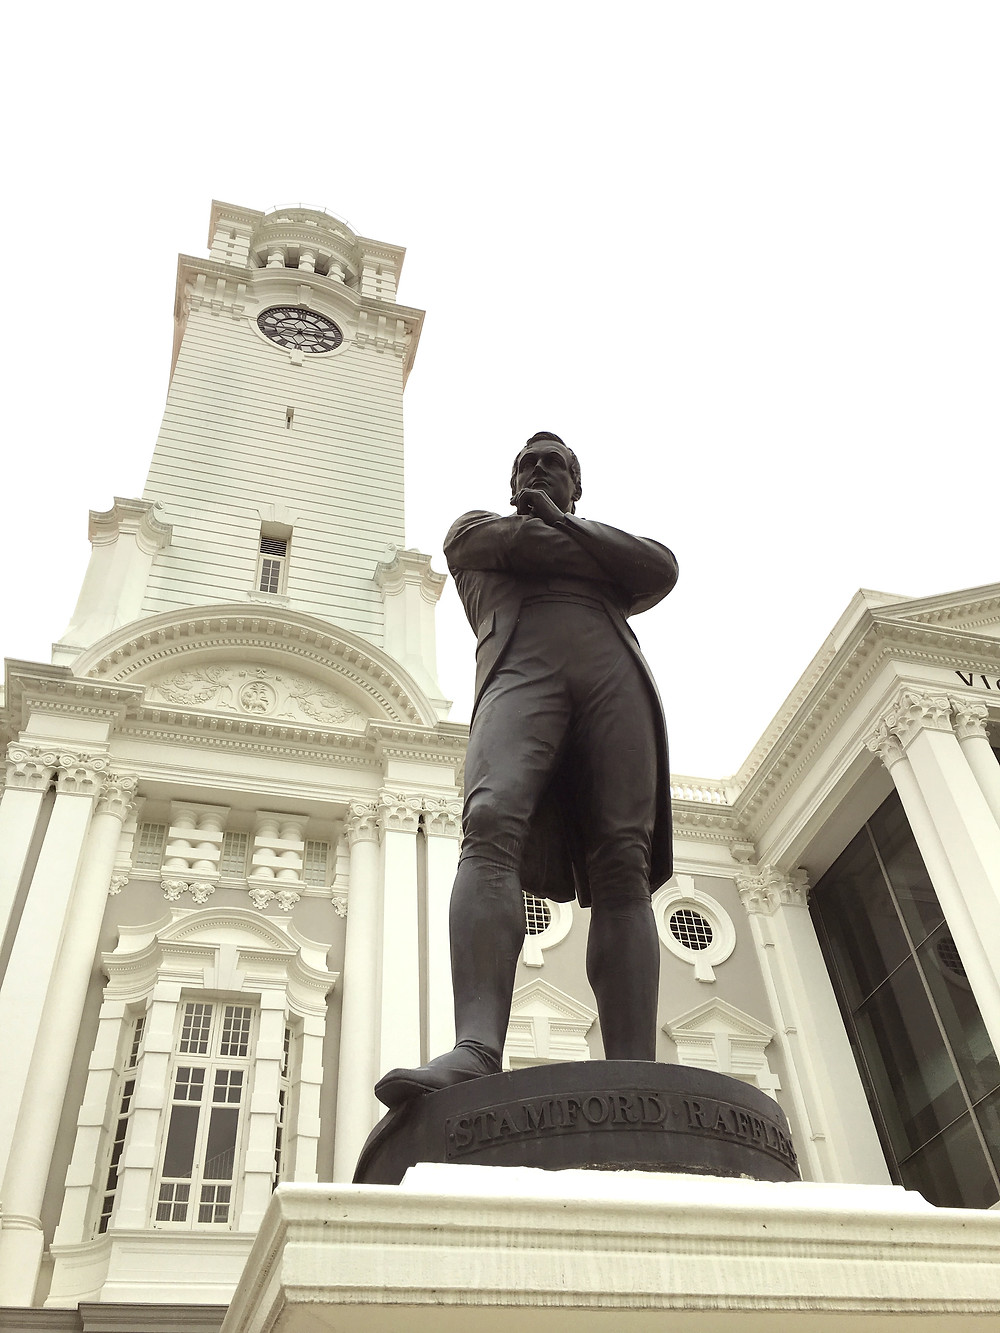 Stamford Raffles at the Victoria Theatre, Singapore